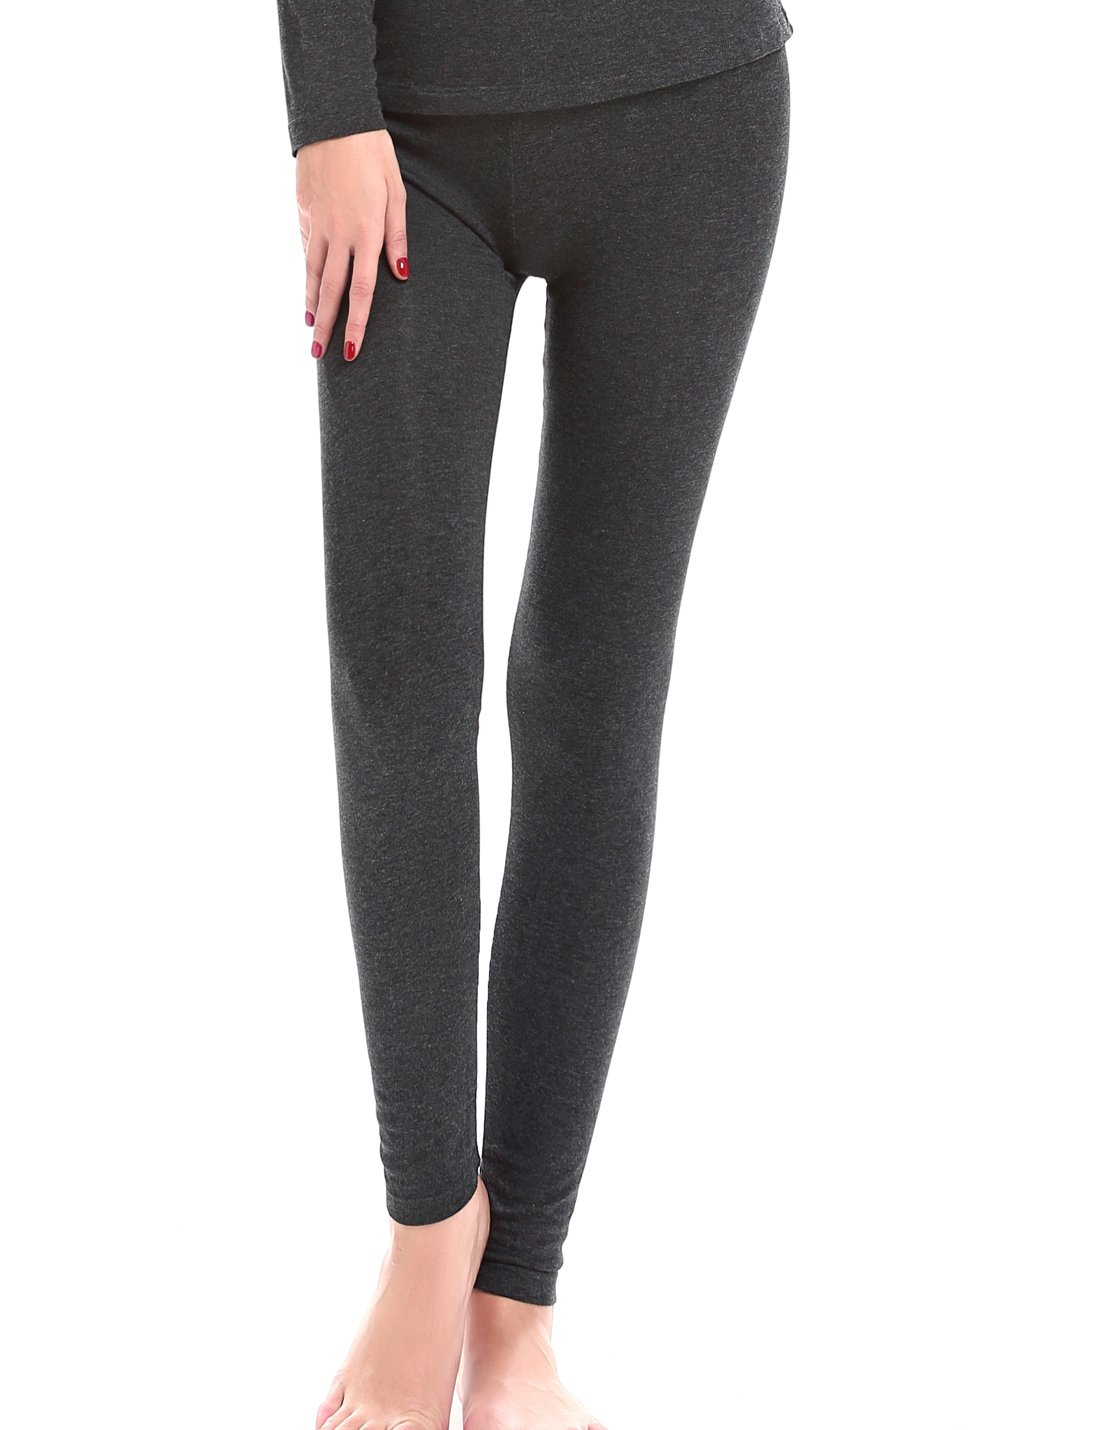 Liqqy Women's Ultra Thin Stretch Baselayer Thermal Underwear Bottom Pants (Medium, Charcoal)